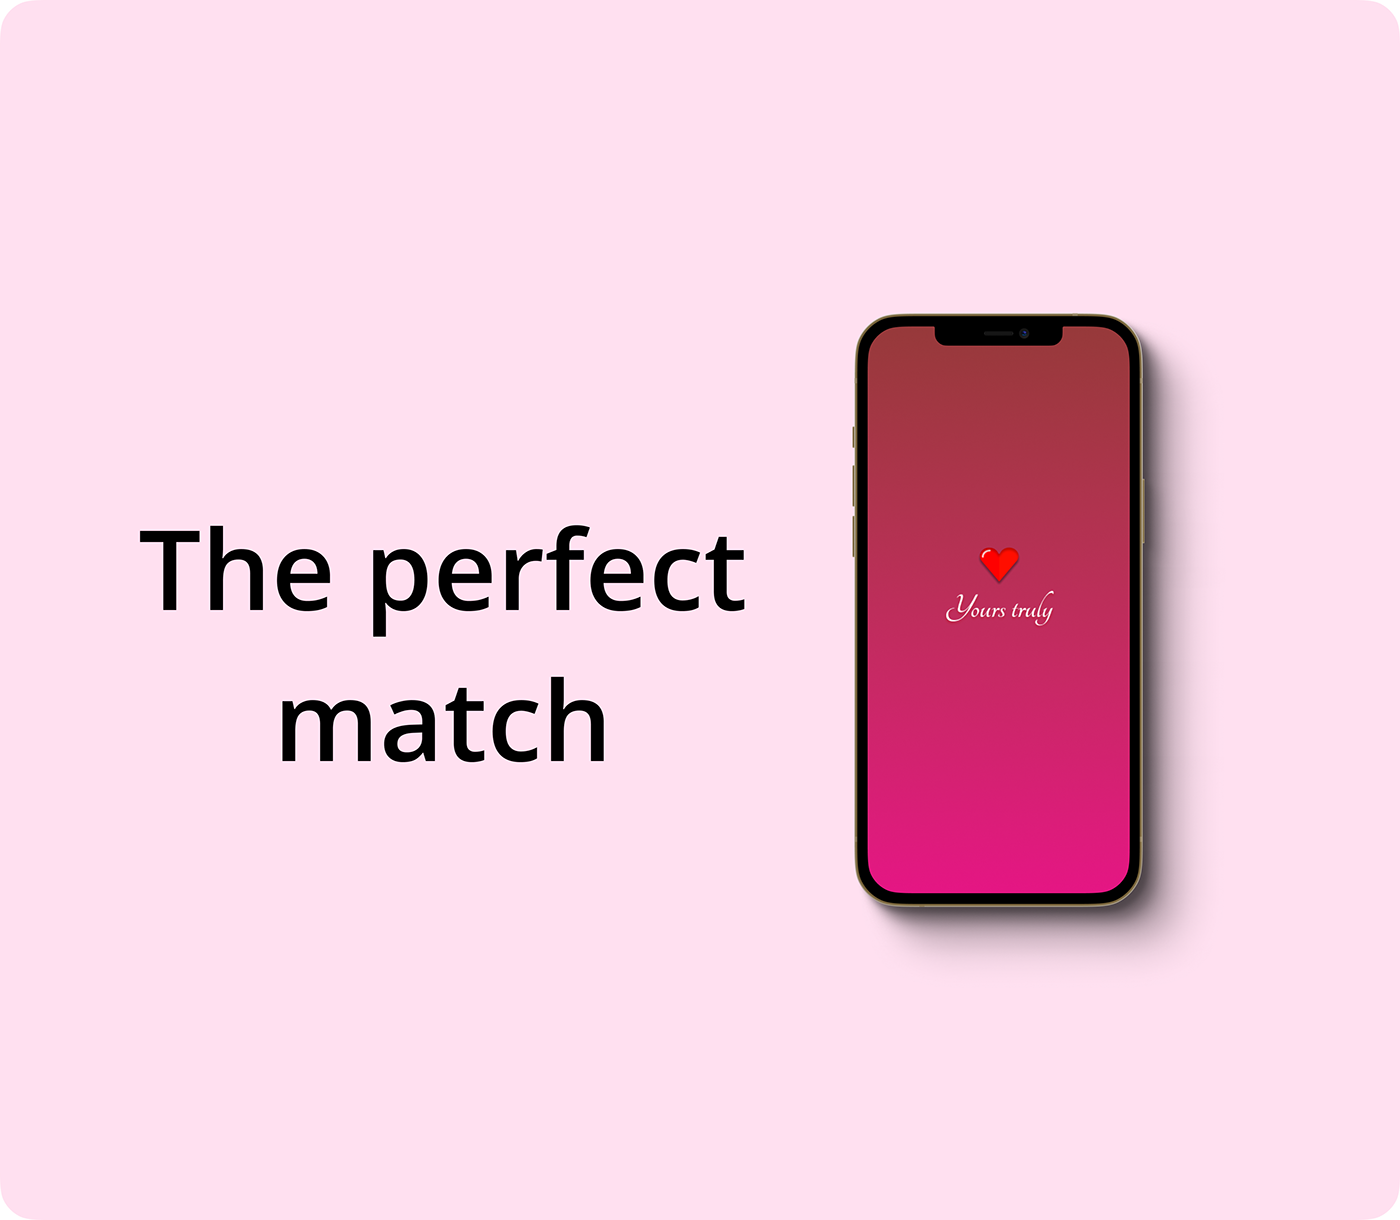 app application concept Dating design Jhon Raza Love pink UI yours truly